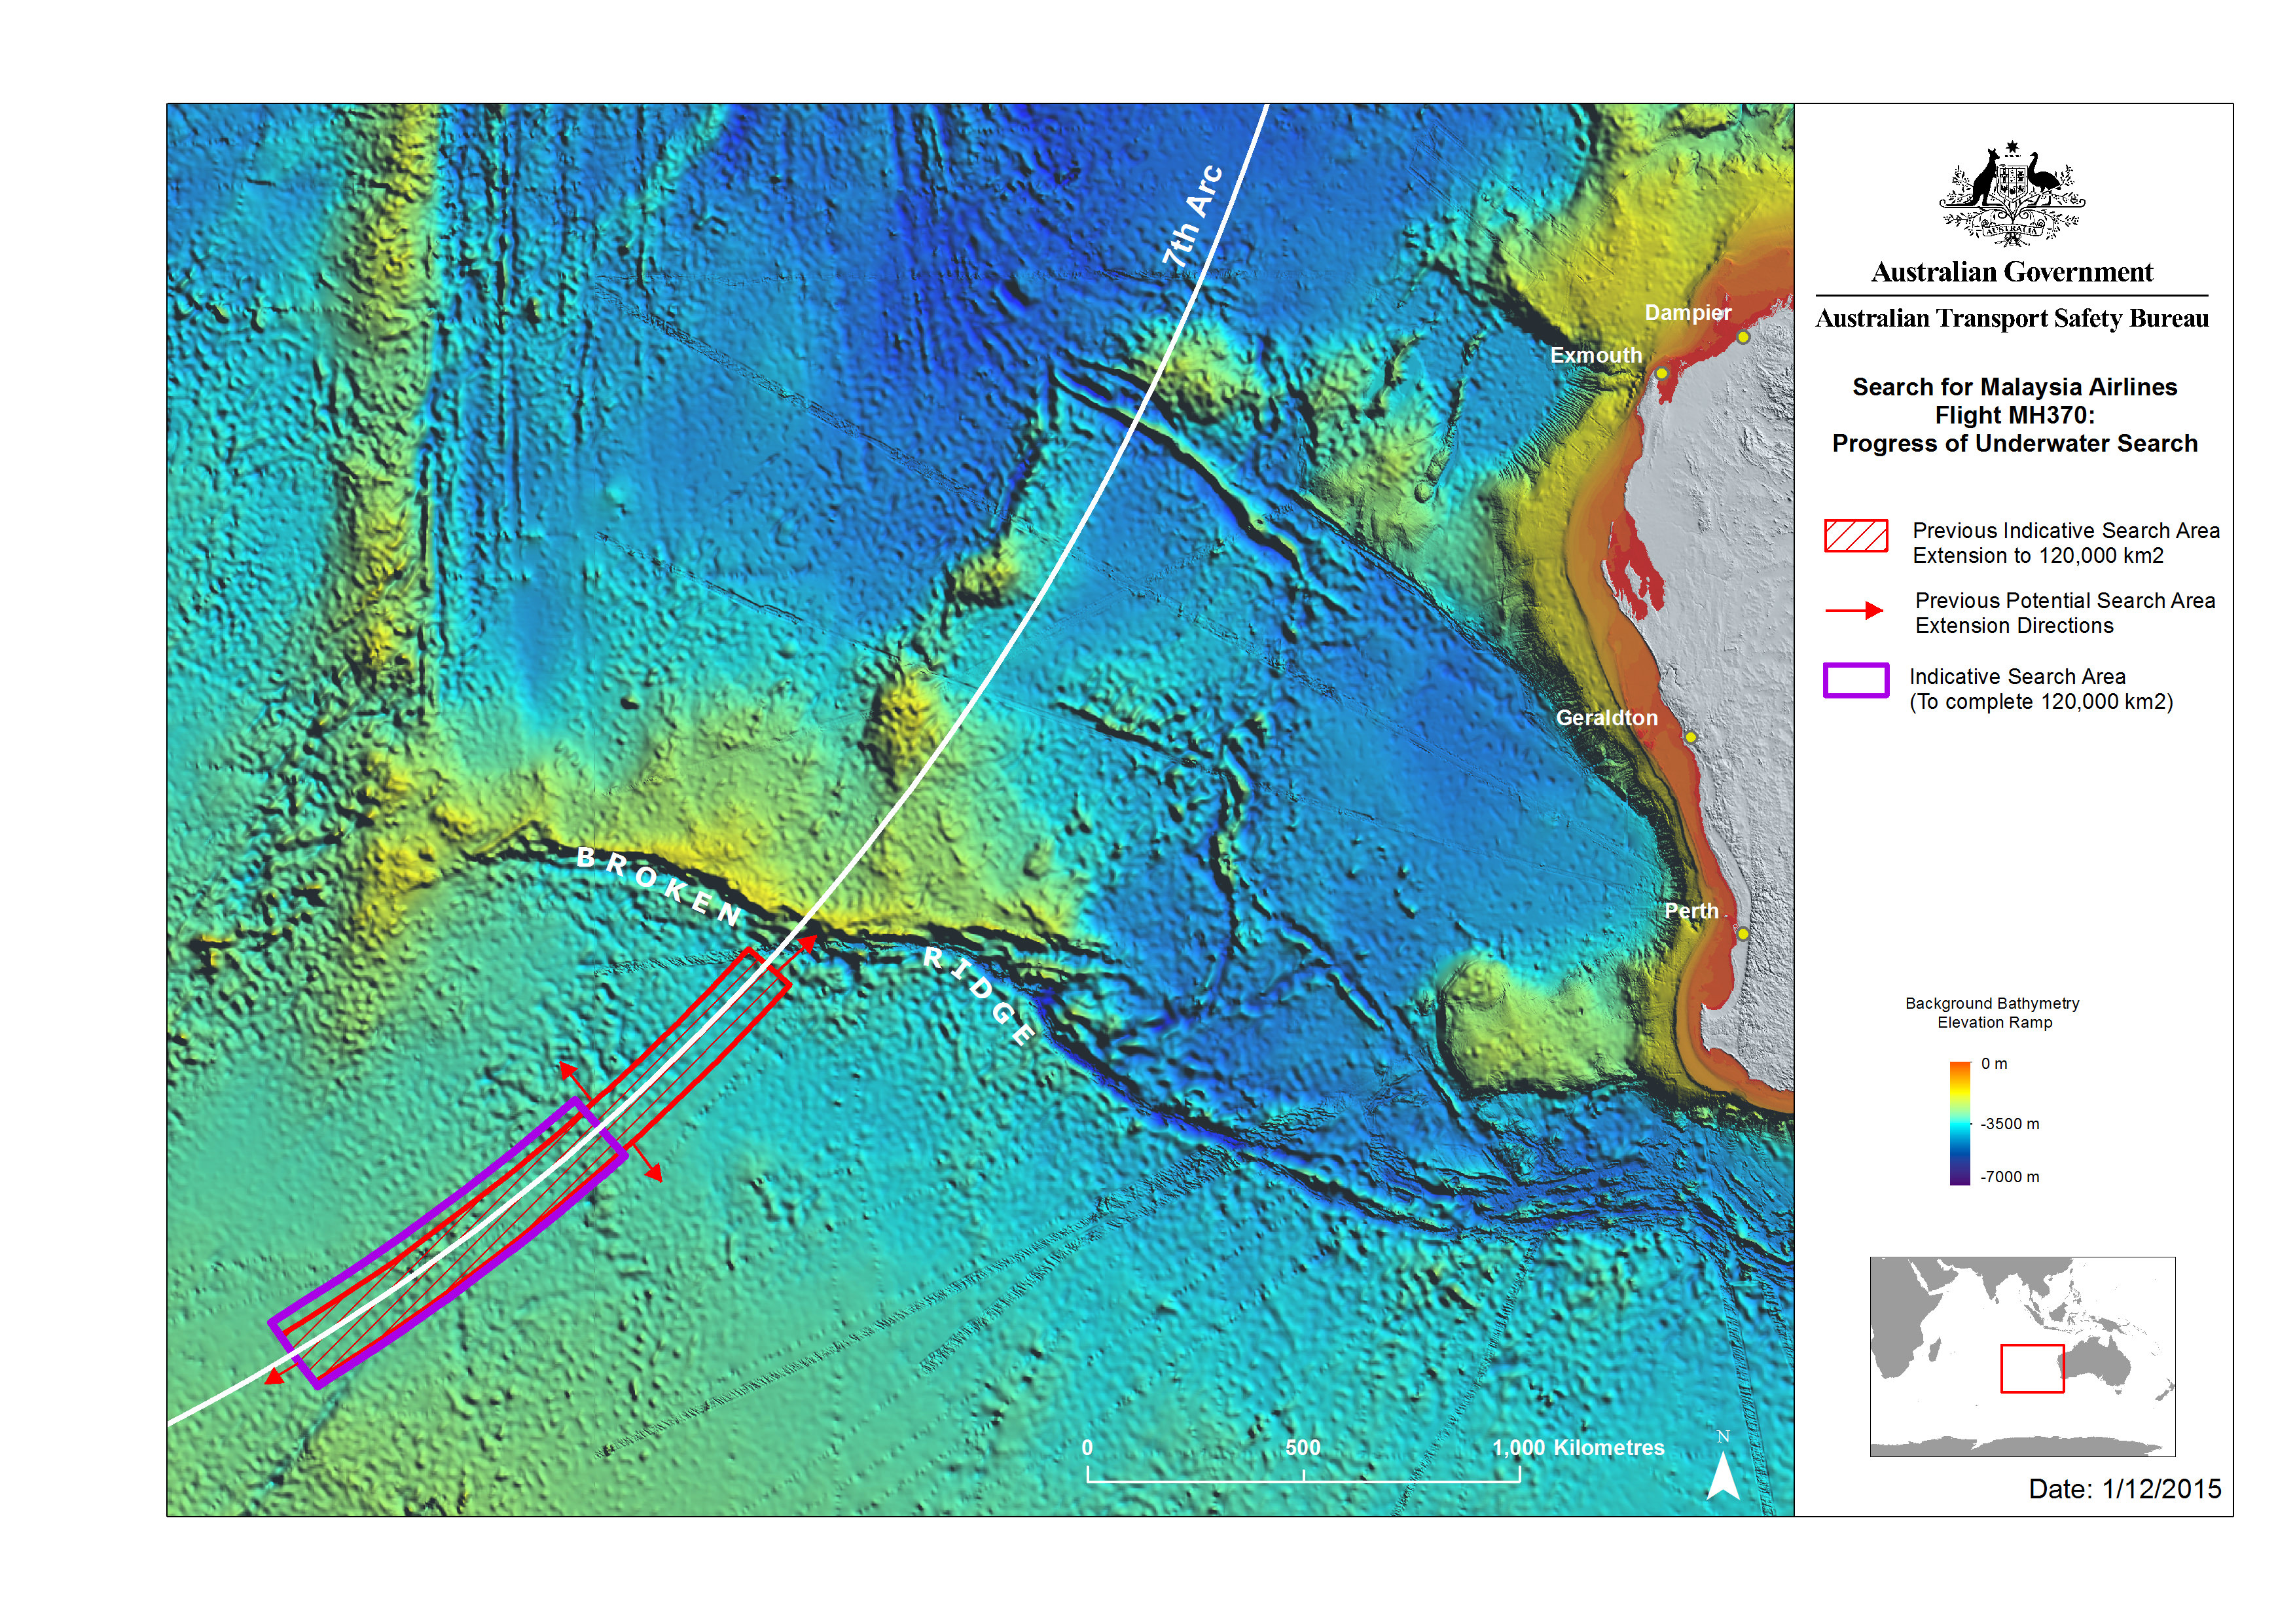 Latest update from the ATSB on the search area for MH370